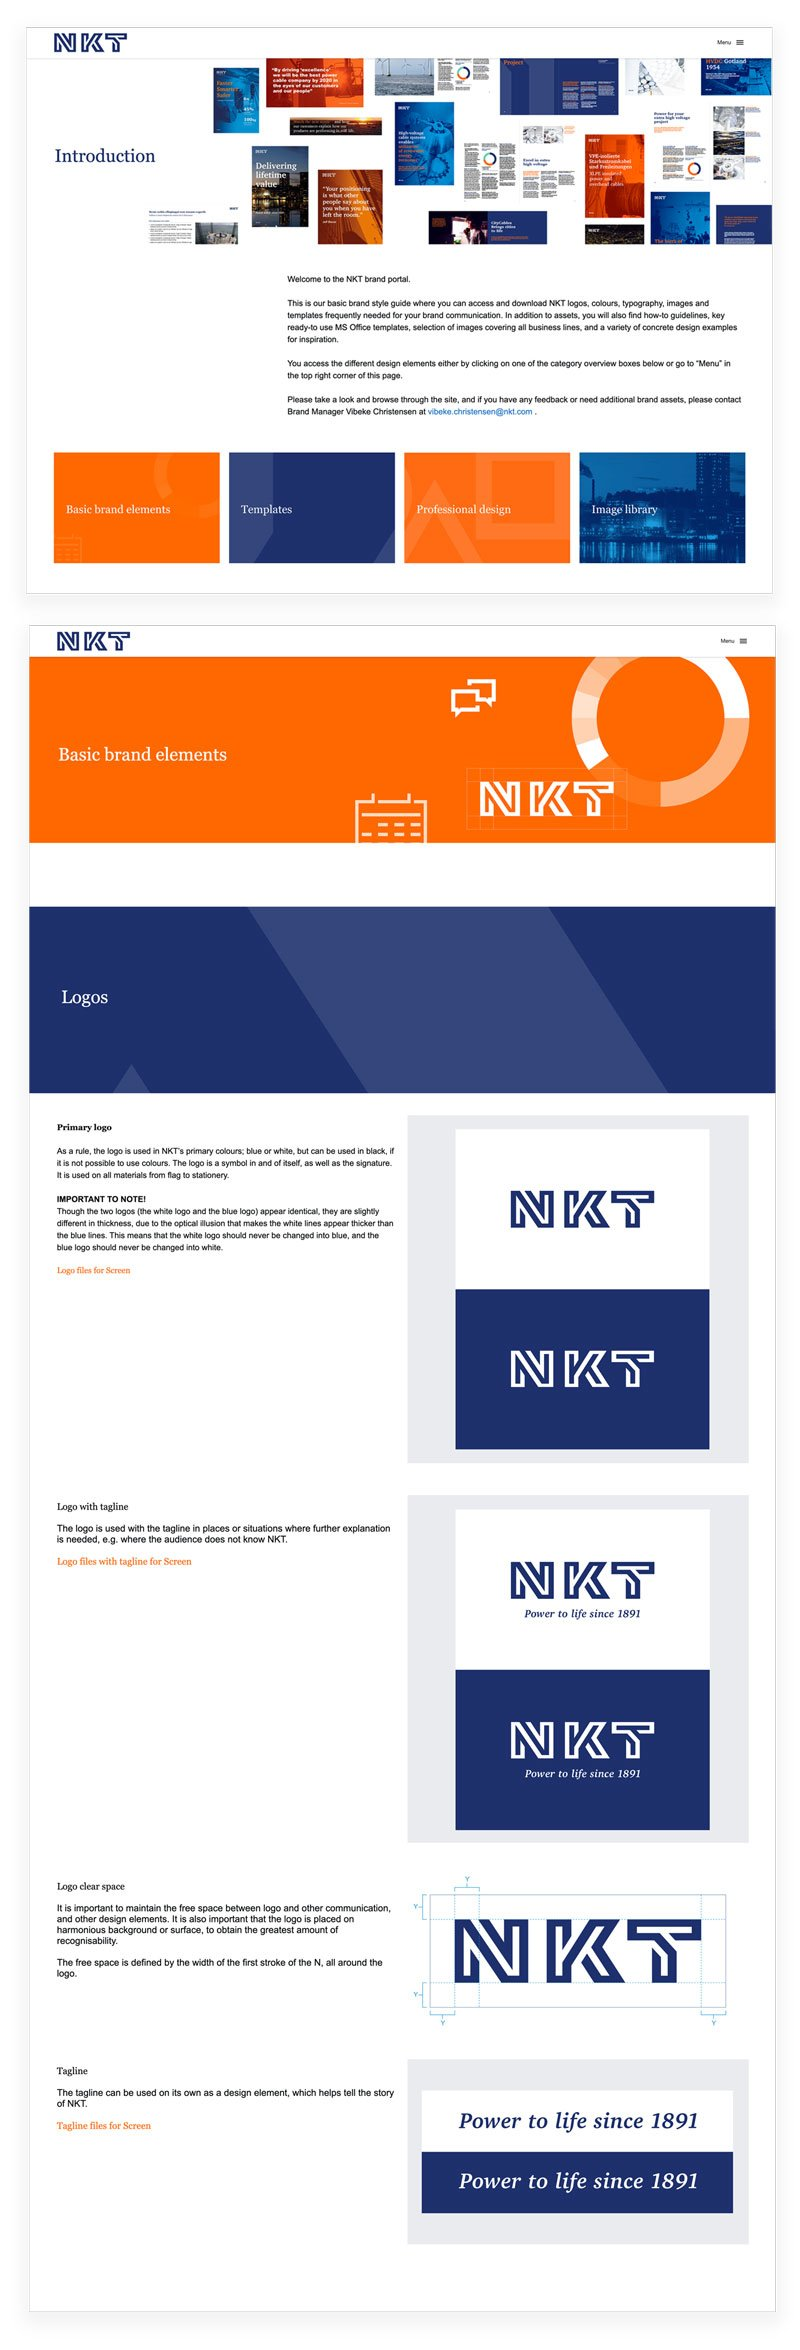 NKT Mini Brand Portal Visuals